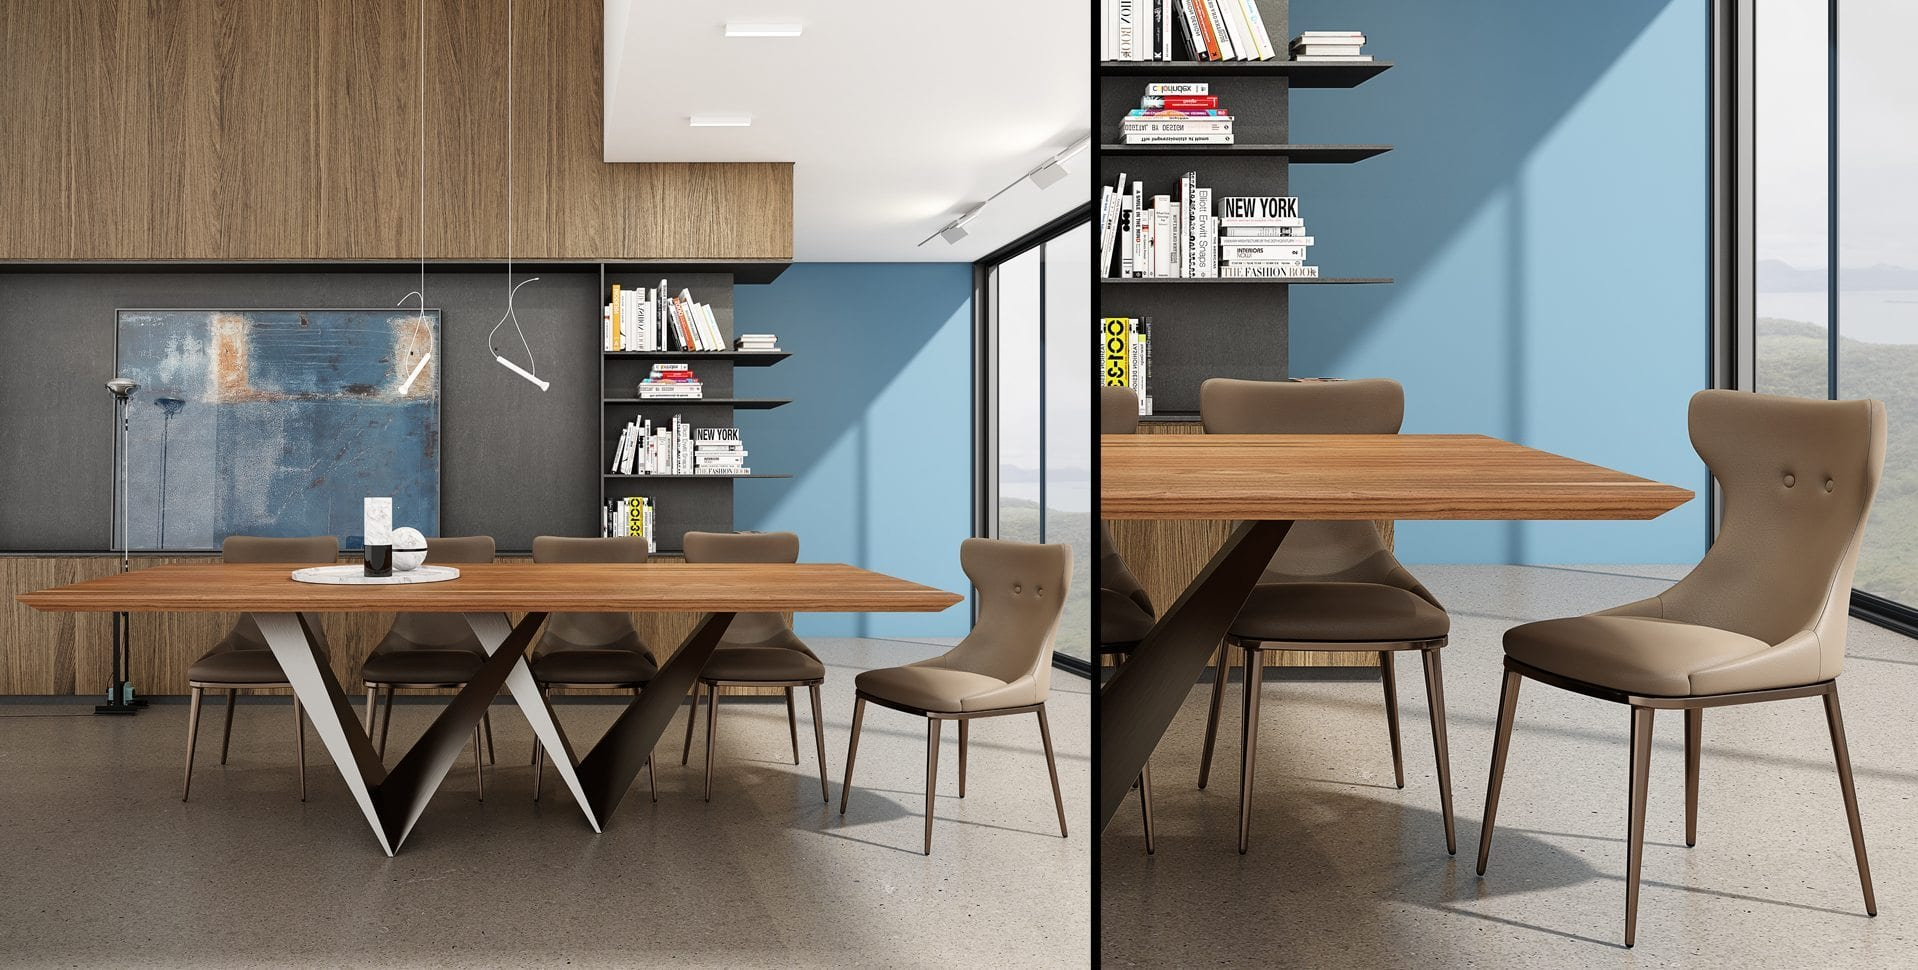 Maayan-Golan_Architectural-Visualization_product-visualization_dining-room-set_rossetto-furniture_06